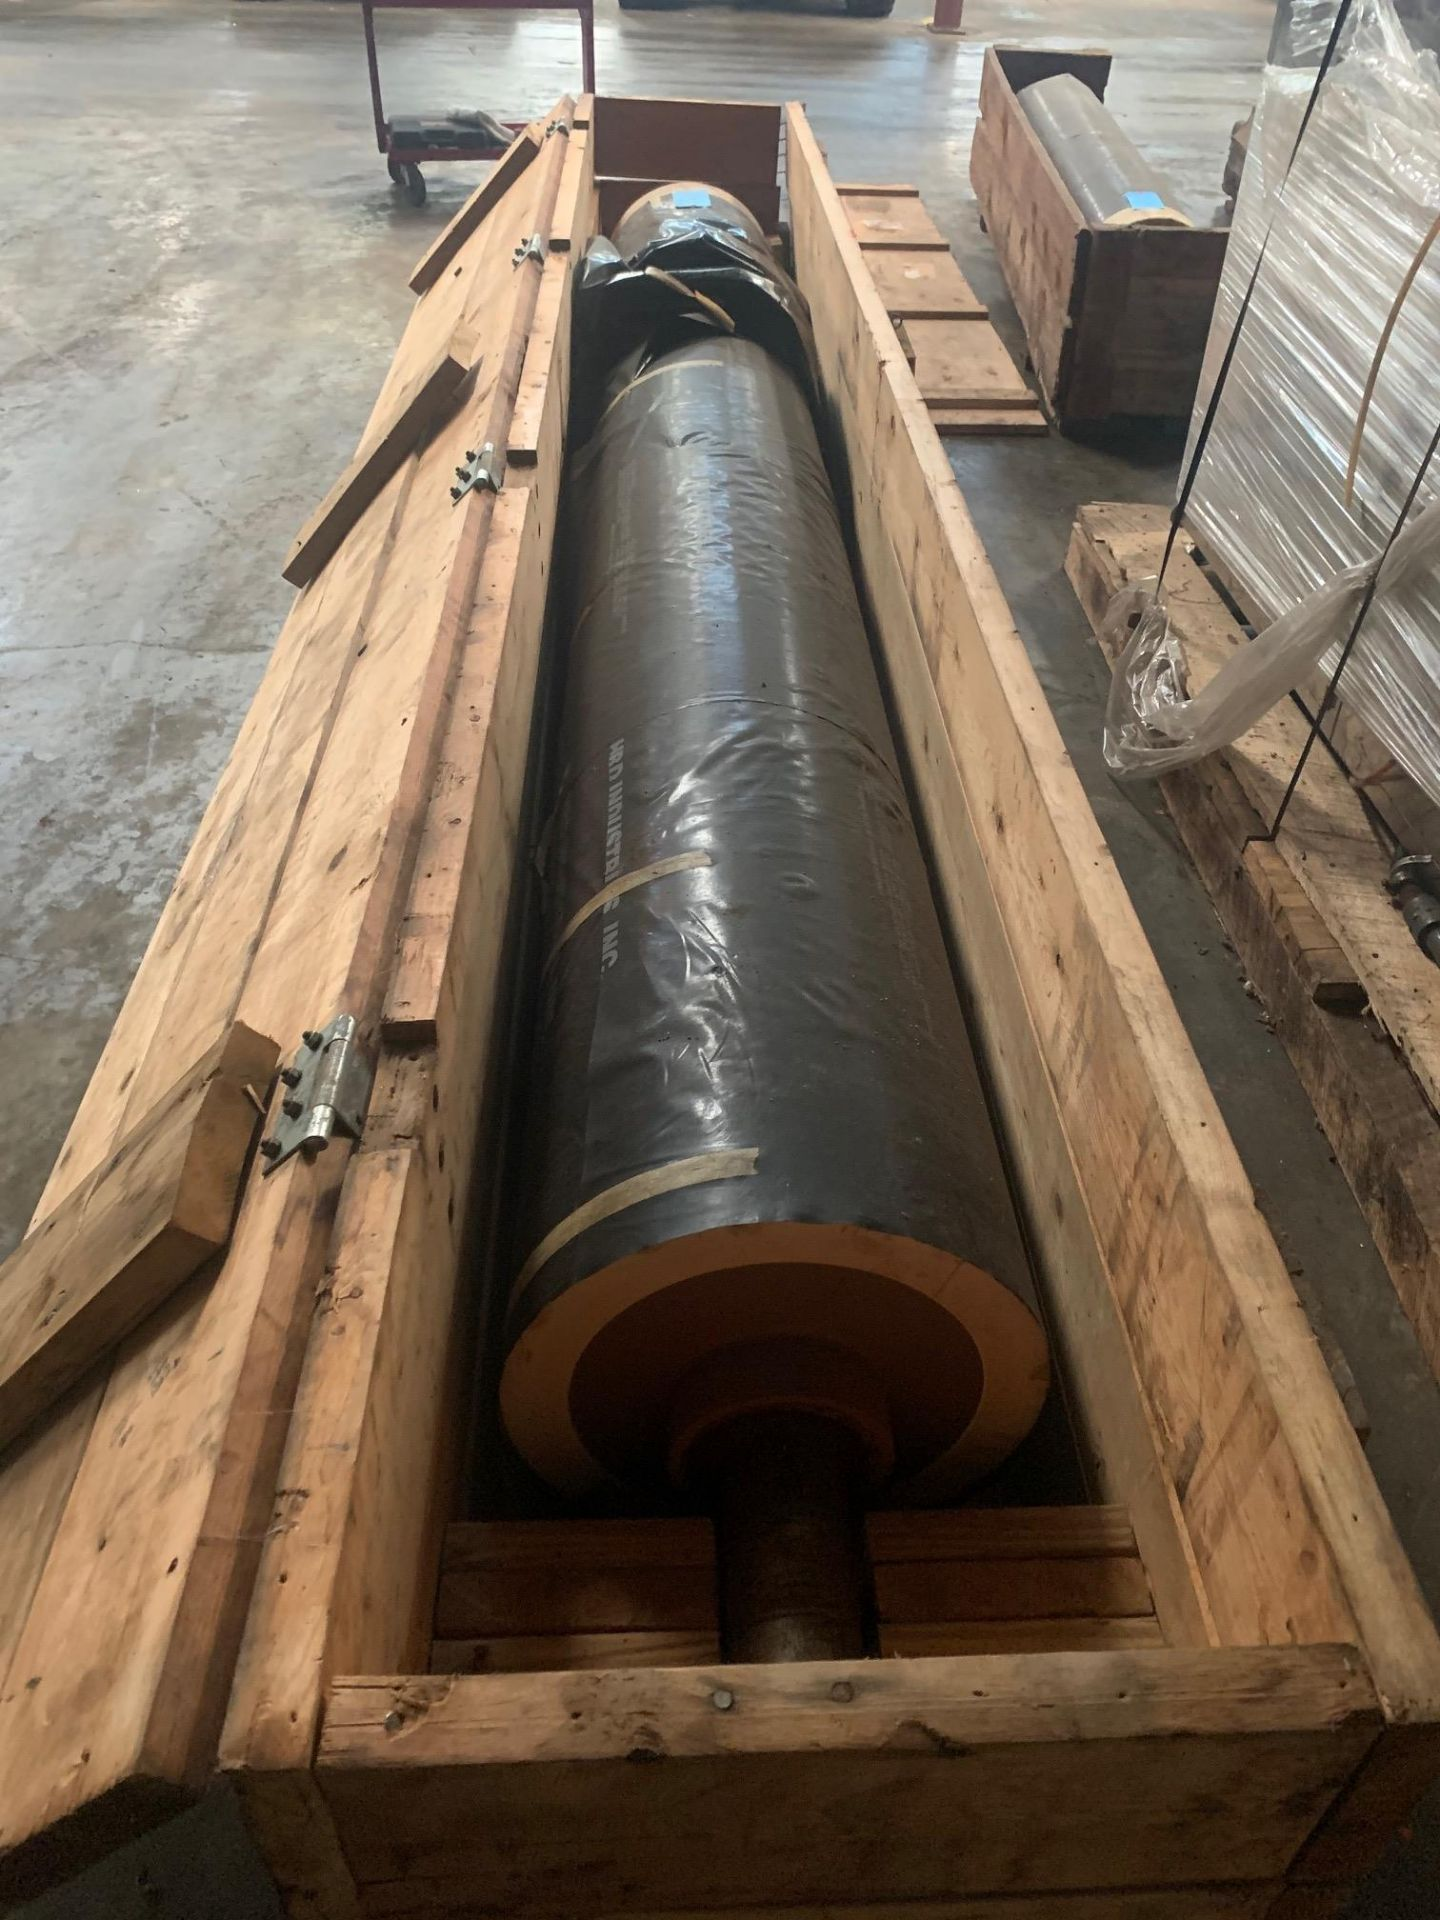 "Lot 21138 - Nip Roll 72""Face x 12"" Diameter and 4"" shaft (New Rubber), Rigging Fee: $50"